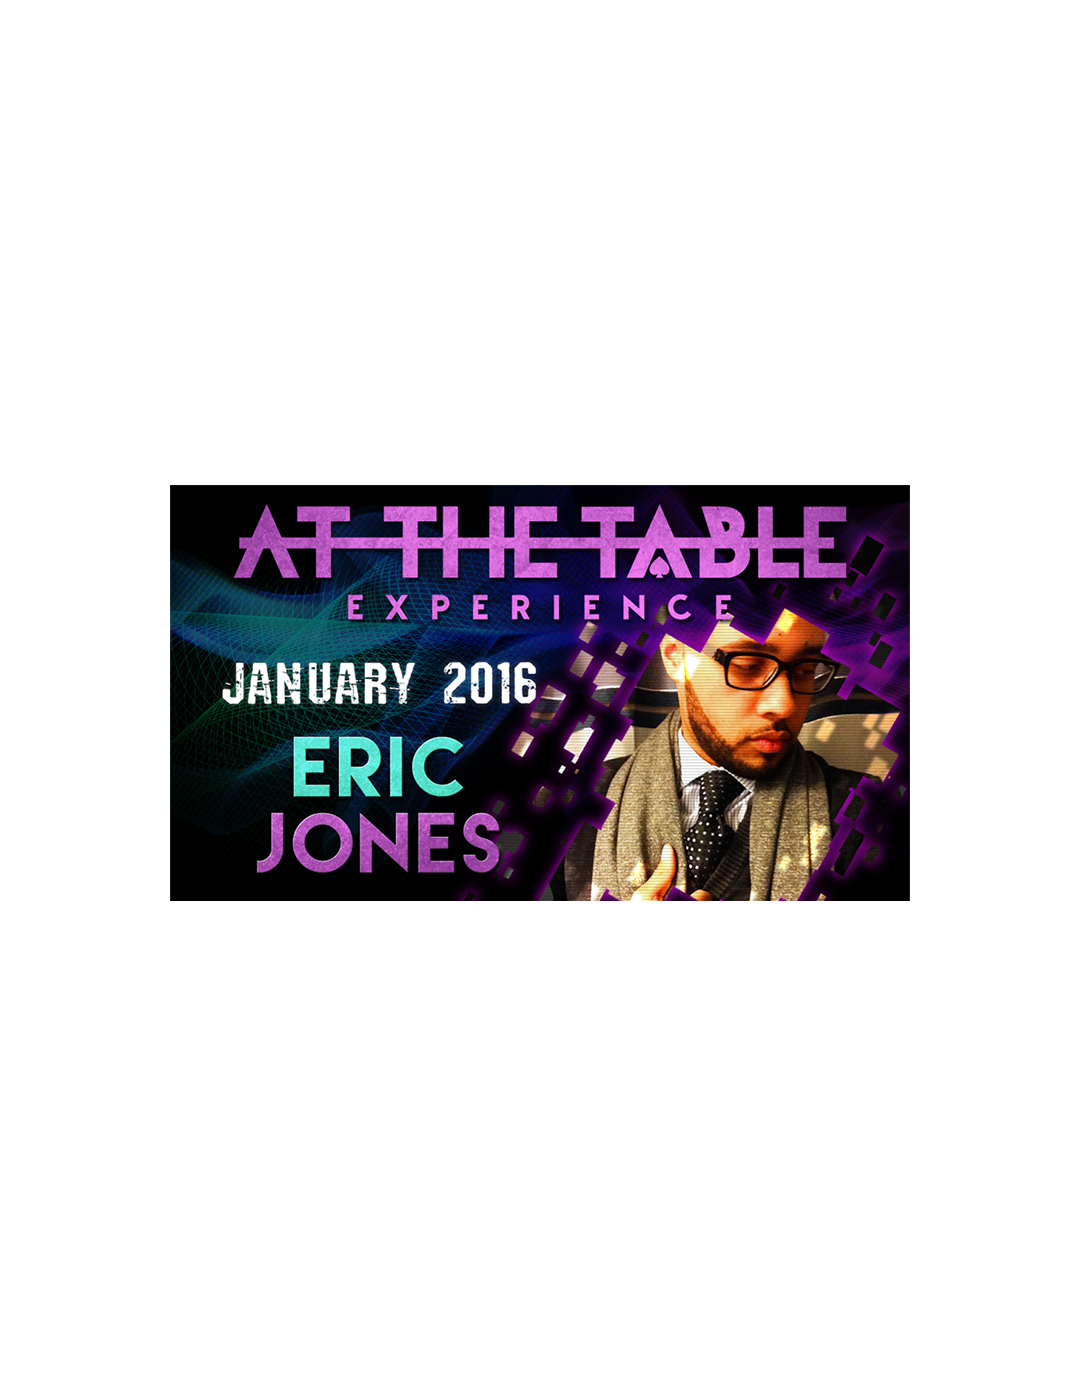 At the Table Live Lecture Eric Jones - 20 ianuarie 2016 - At the table lecture